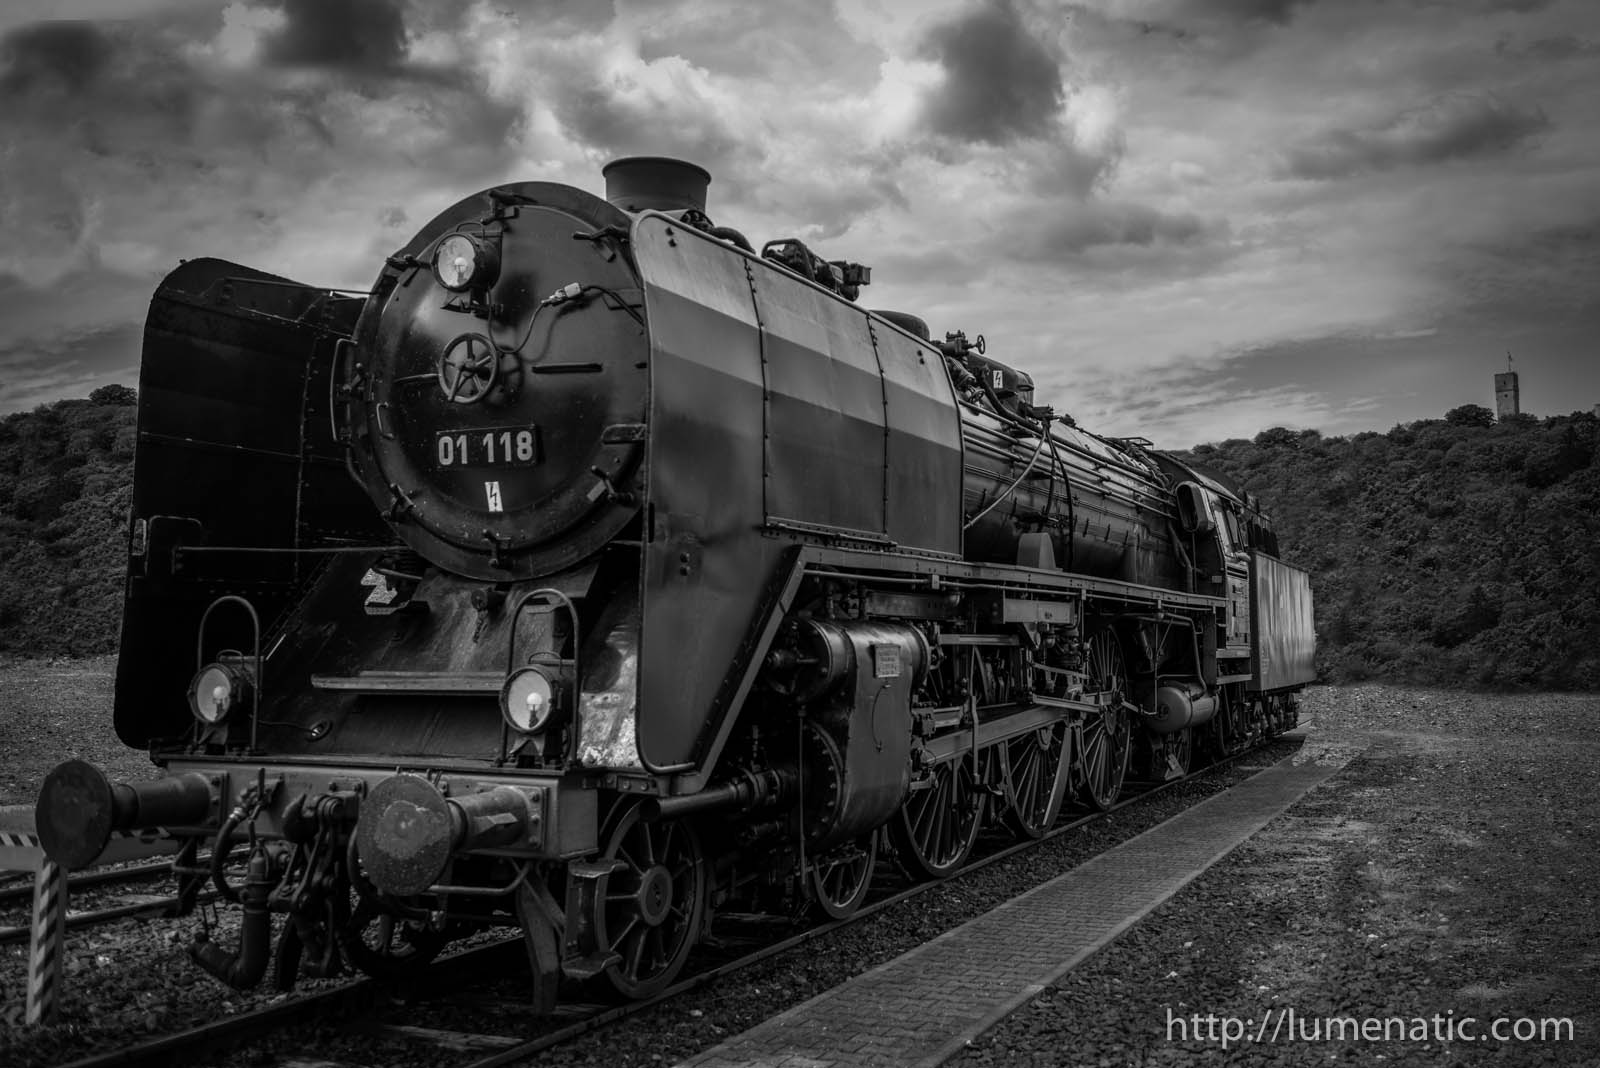 Historic steam engine (Lightroom filter presets)